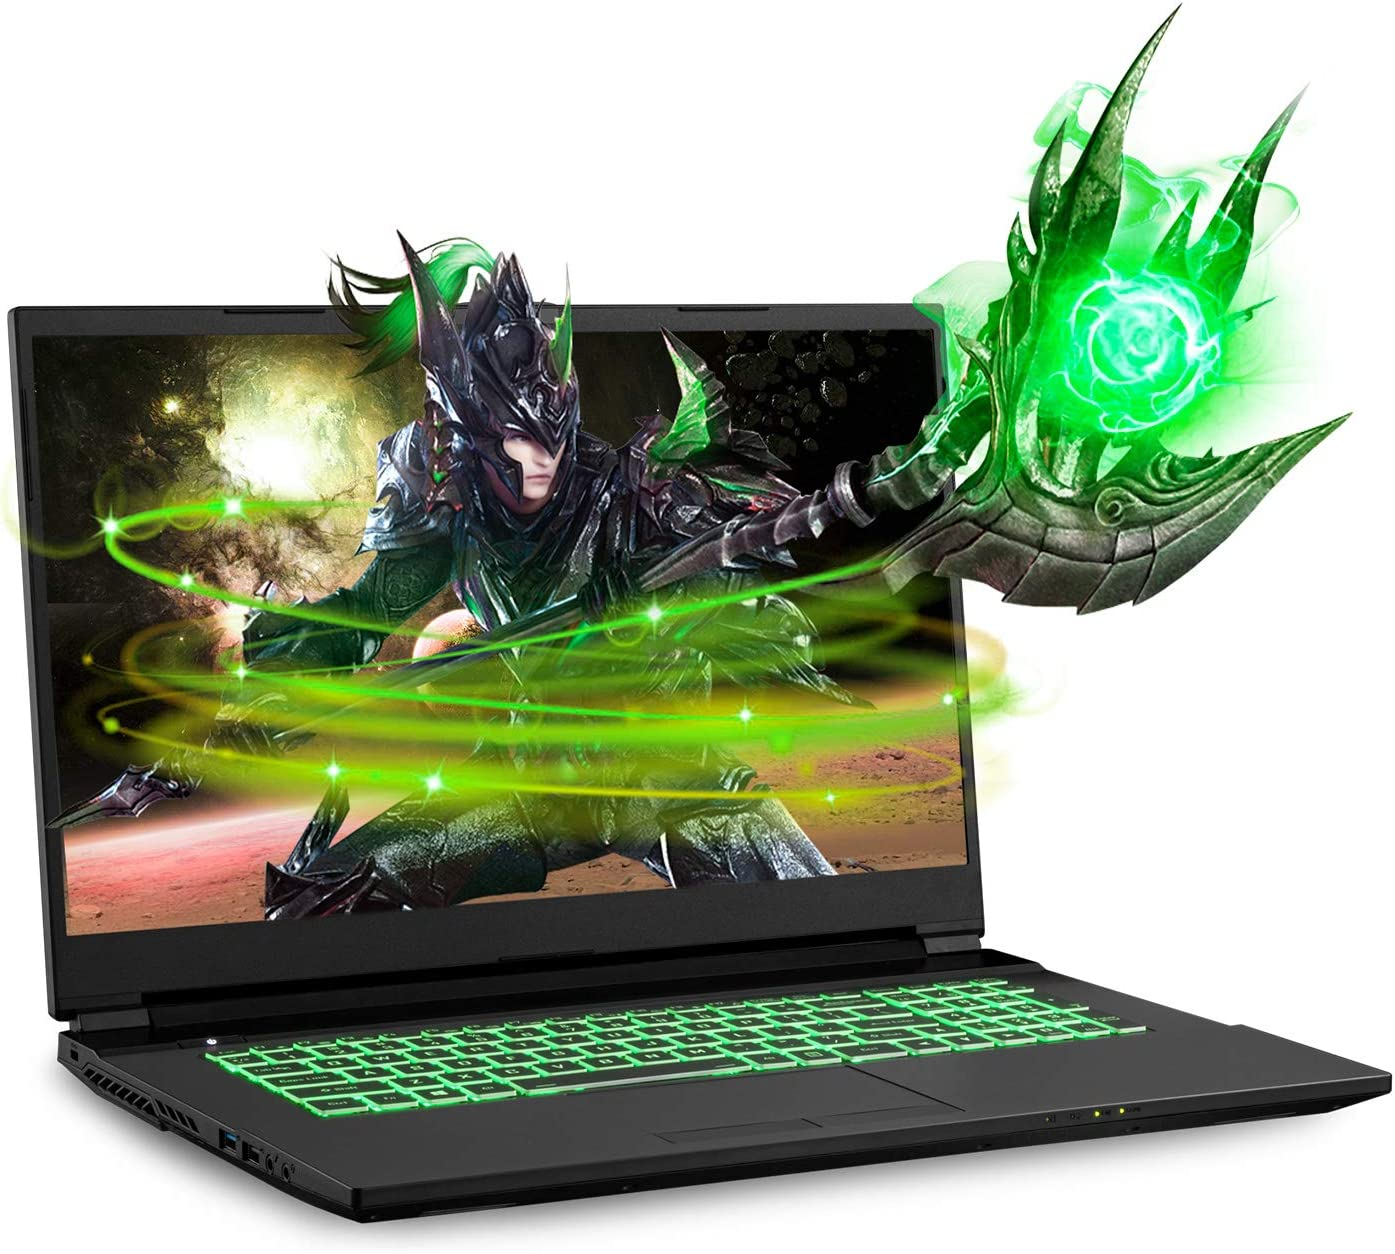 Sager NP7877DW 17.3-Inch Thin Bezel FHD 144Hz Gaming Laptop, Intel i7-10875H, RTX 2060 6GB, 32GB RAM, 500GB NVMe SSD + 1TB HDD, Windows 10